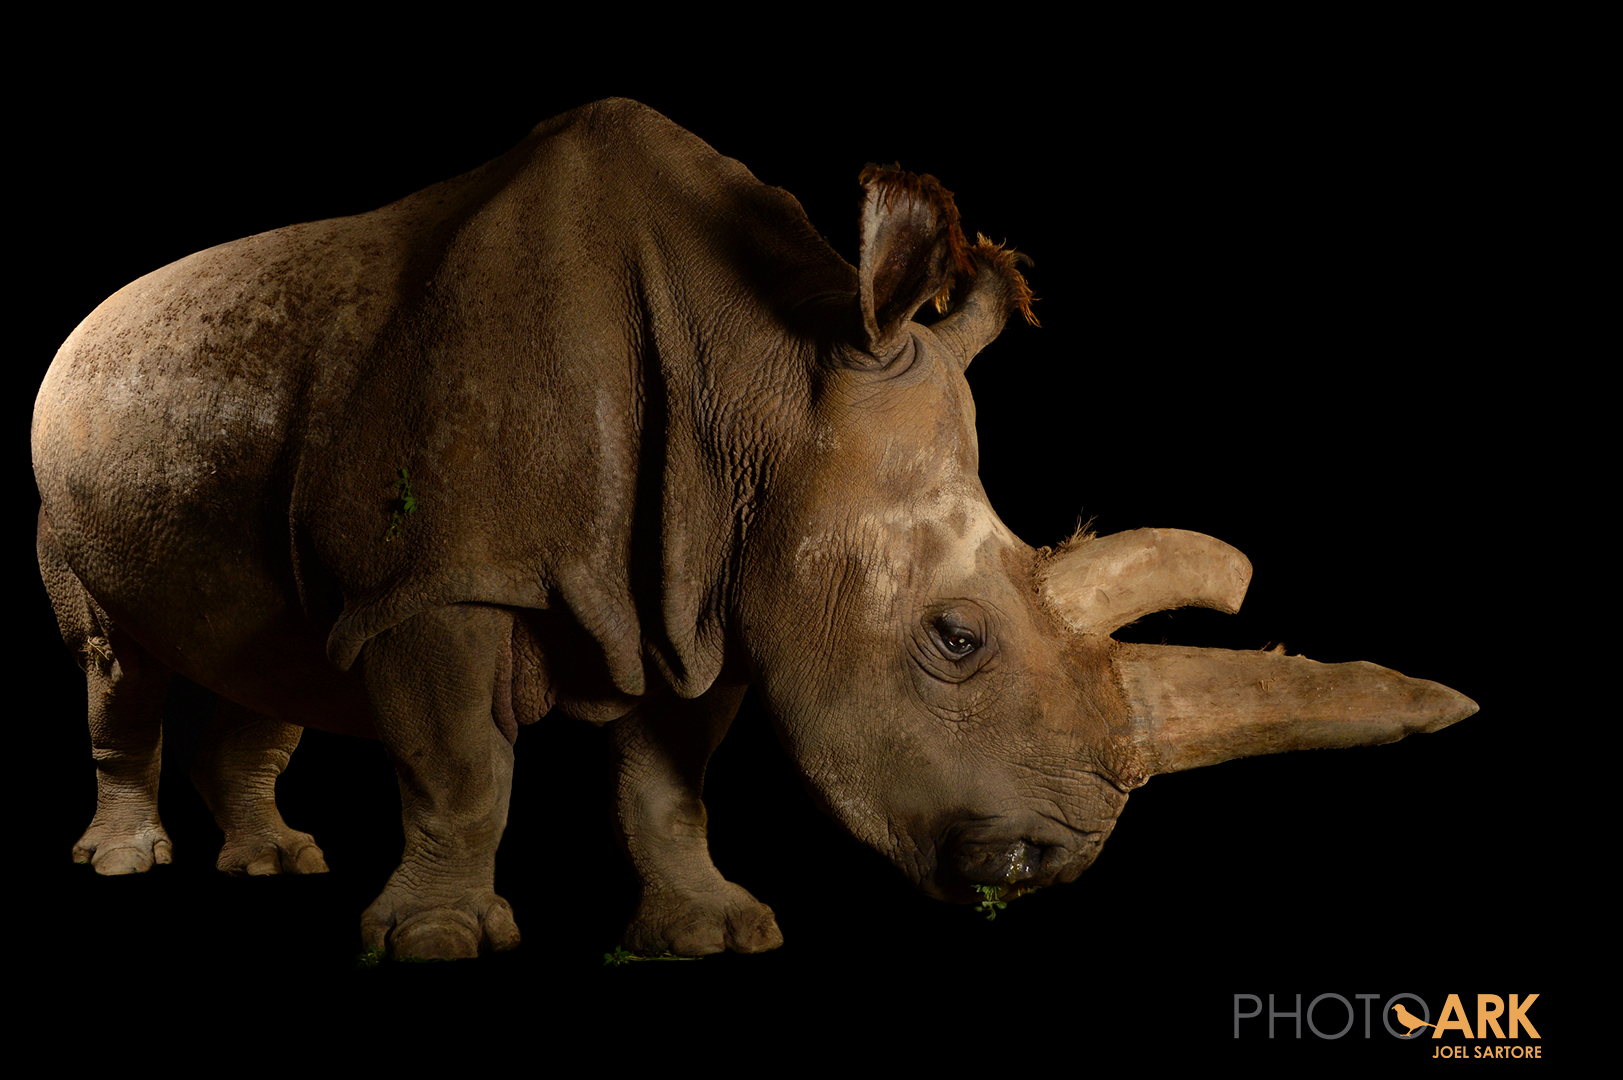 The northern white rhino Nabiré, a 32-year-old female at ZOO Dvůr Králové, sadly died on 27th July, 2015. – Image Credit: Joel Sartore